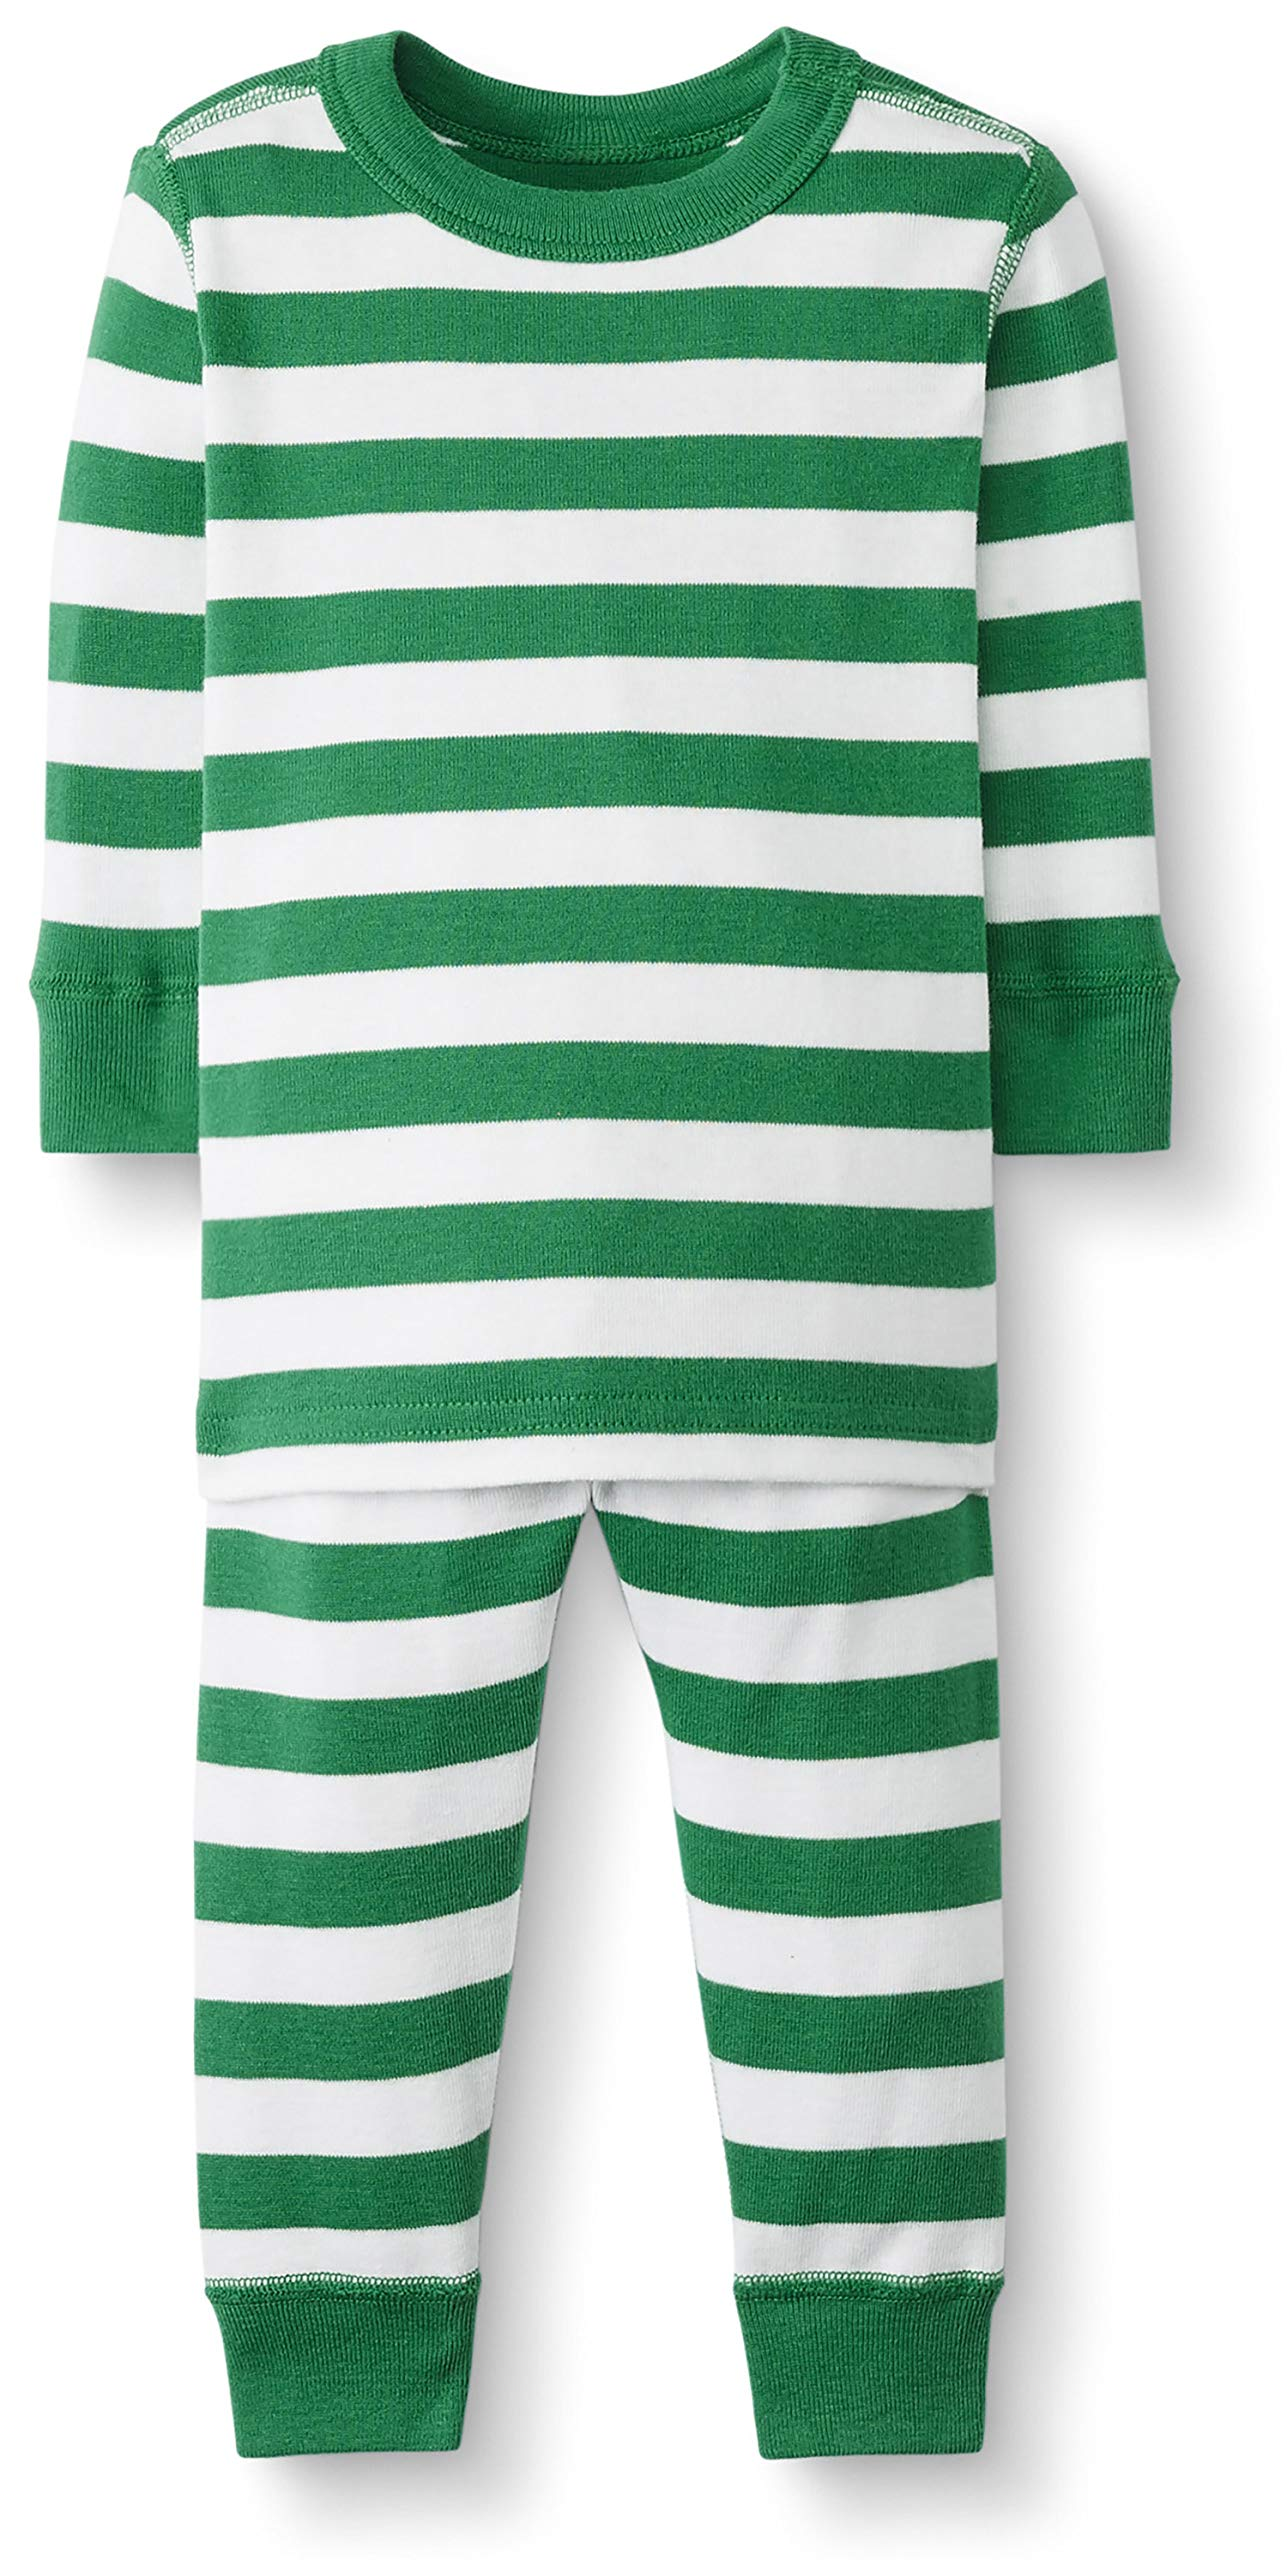 Hanna Andersson Baby/Toddler 2-Piece Organic Cotton Pajama Set Go Green/Hanna White-80 by Hanna Andersson